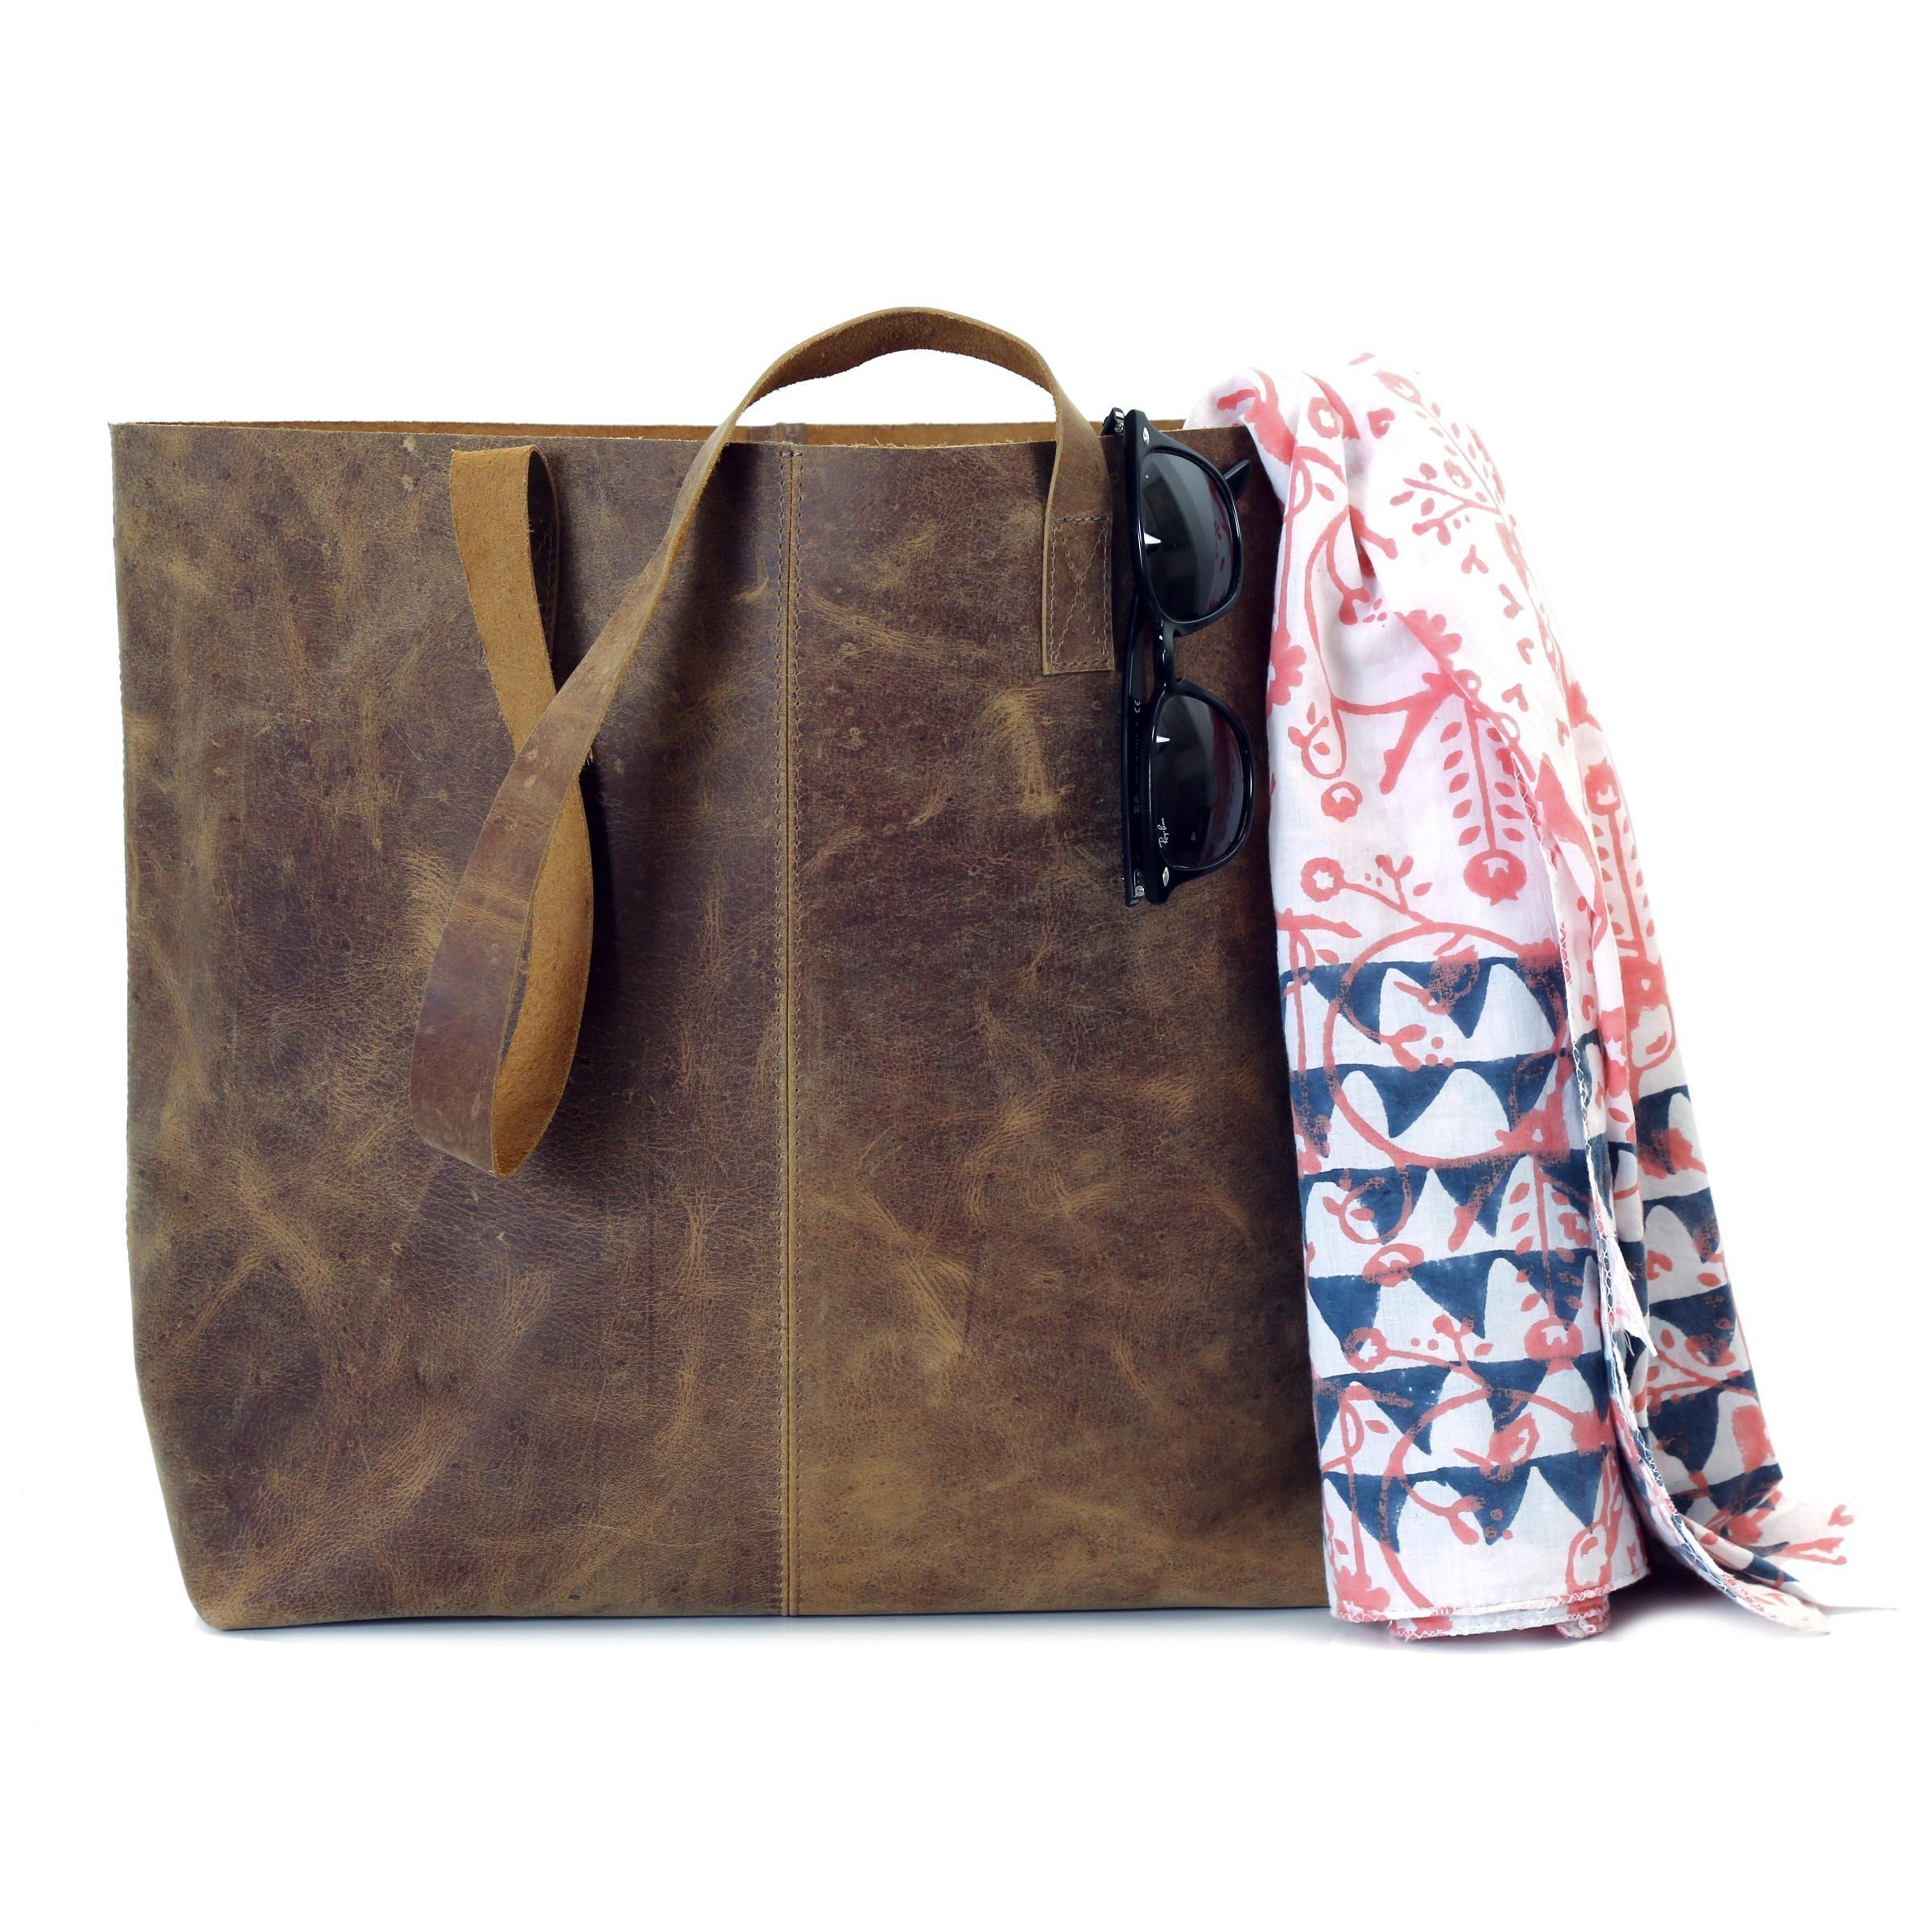 Large Distressed Leather Tote Shopping Bag with Handles Women